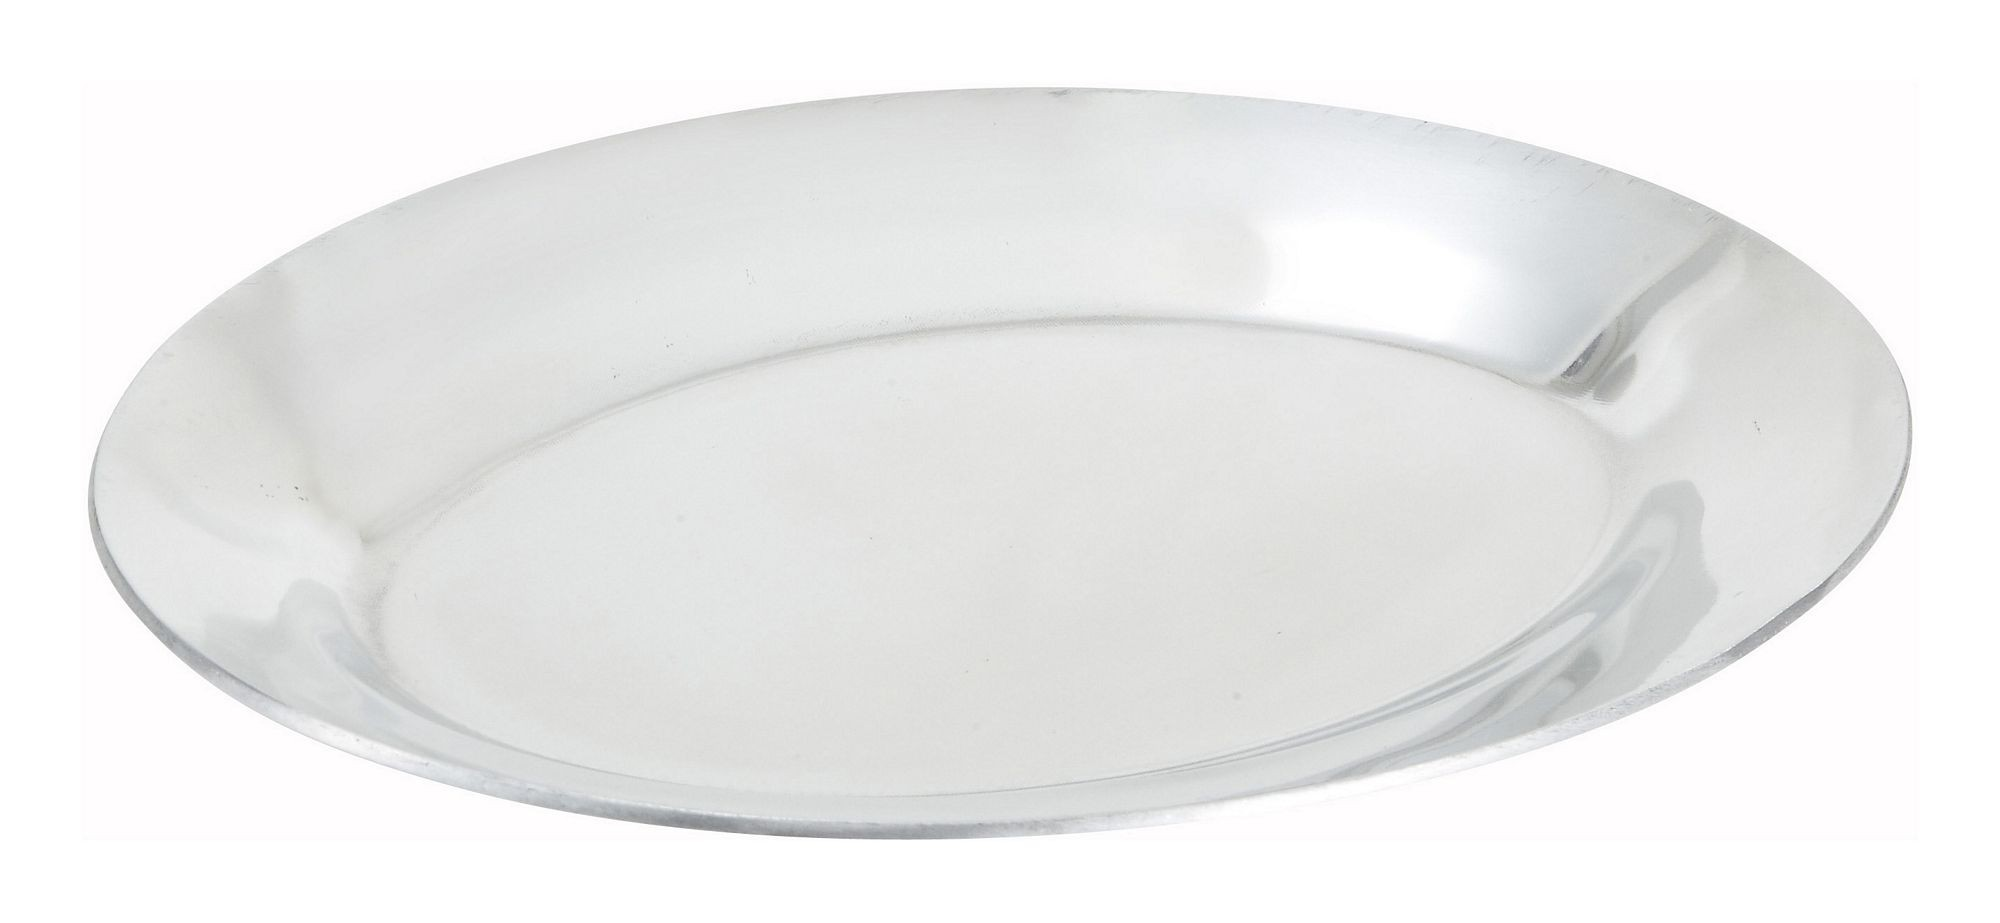 Winco apl-11 Aluminum Oval Sizzling Platter, 11""